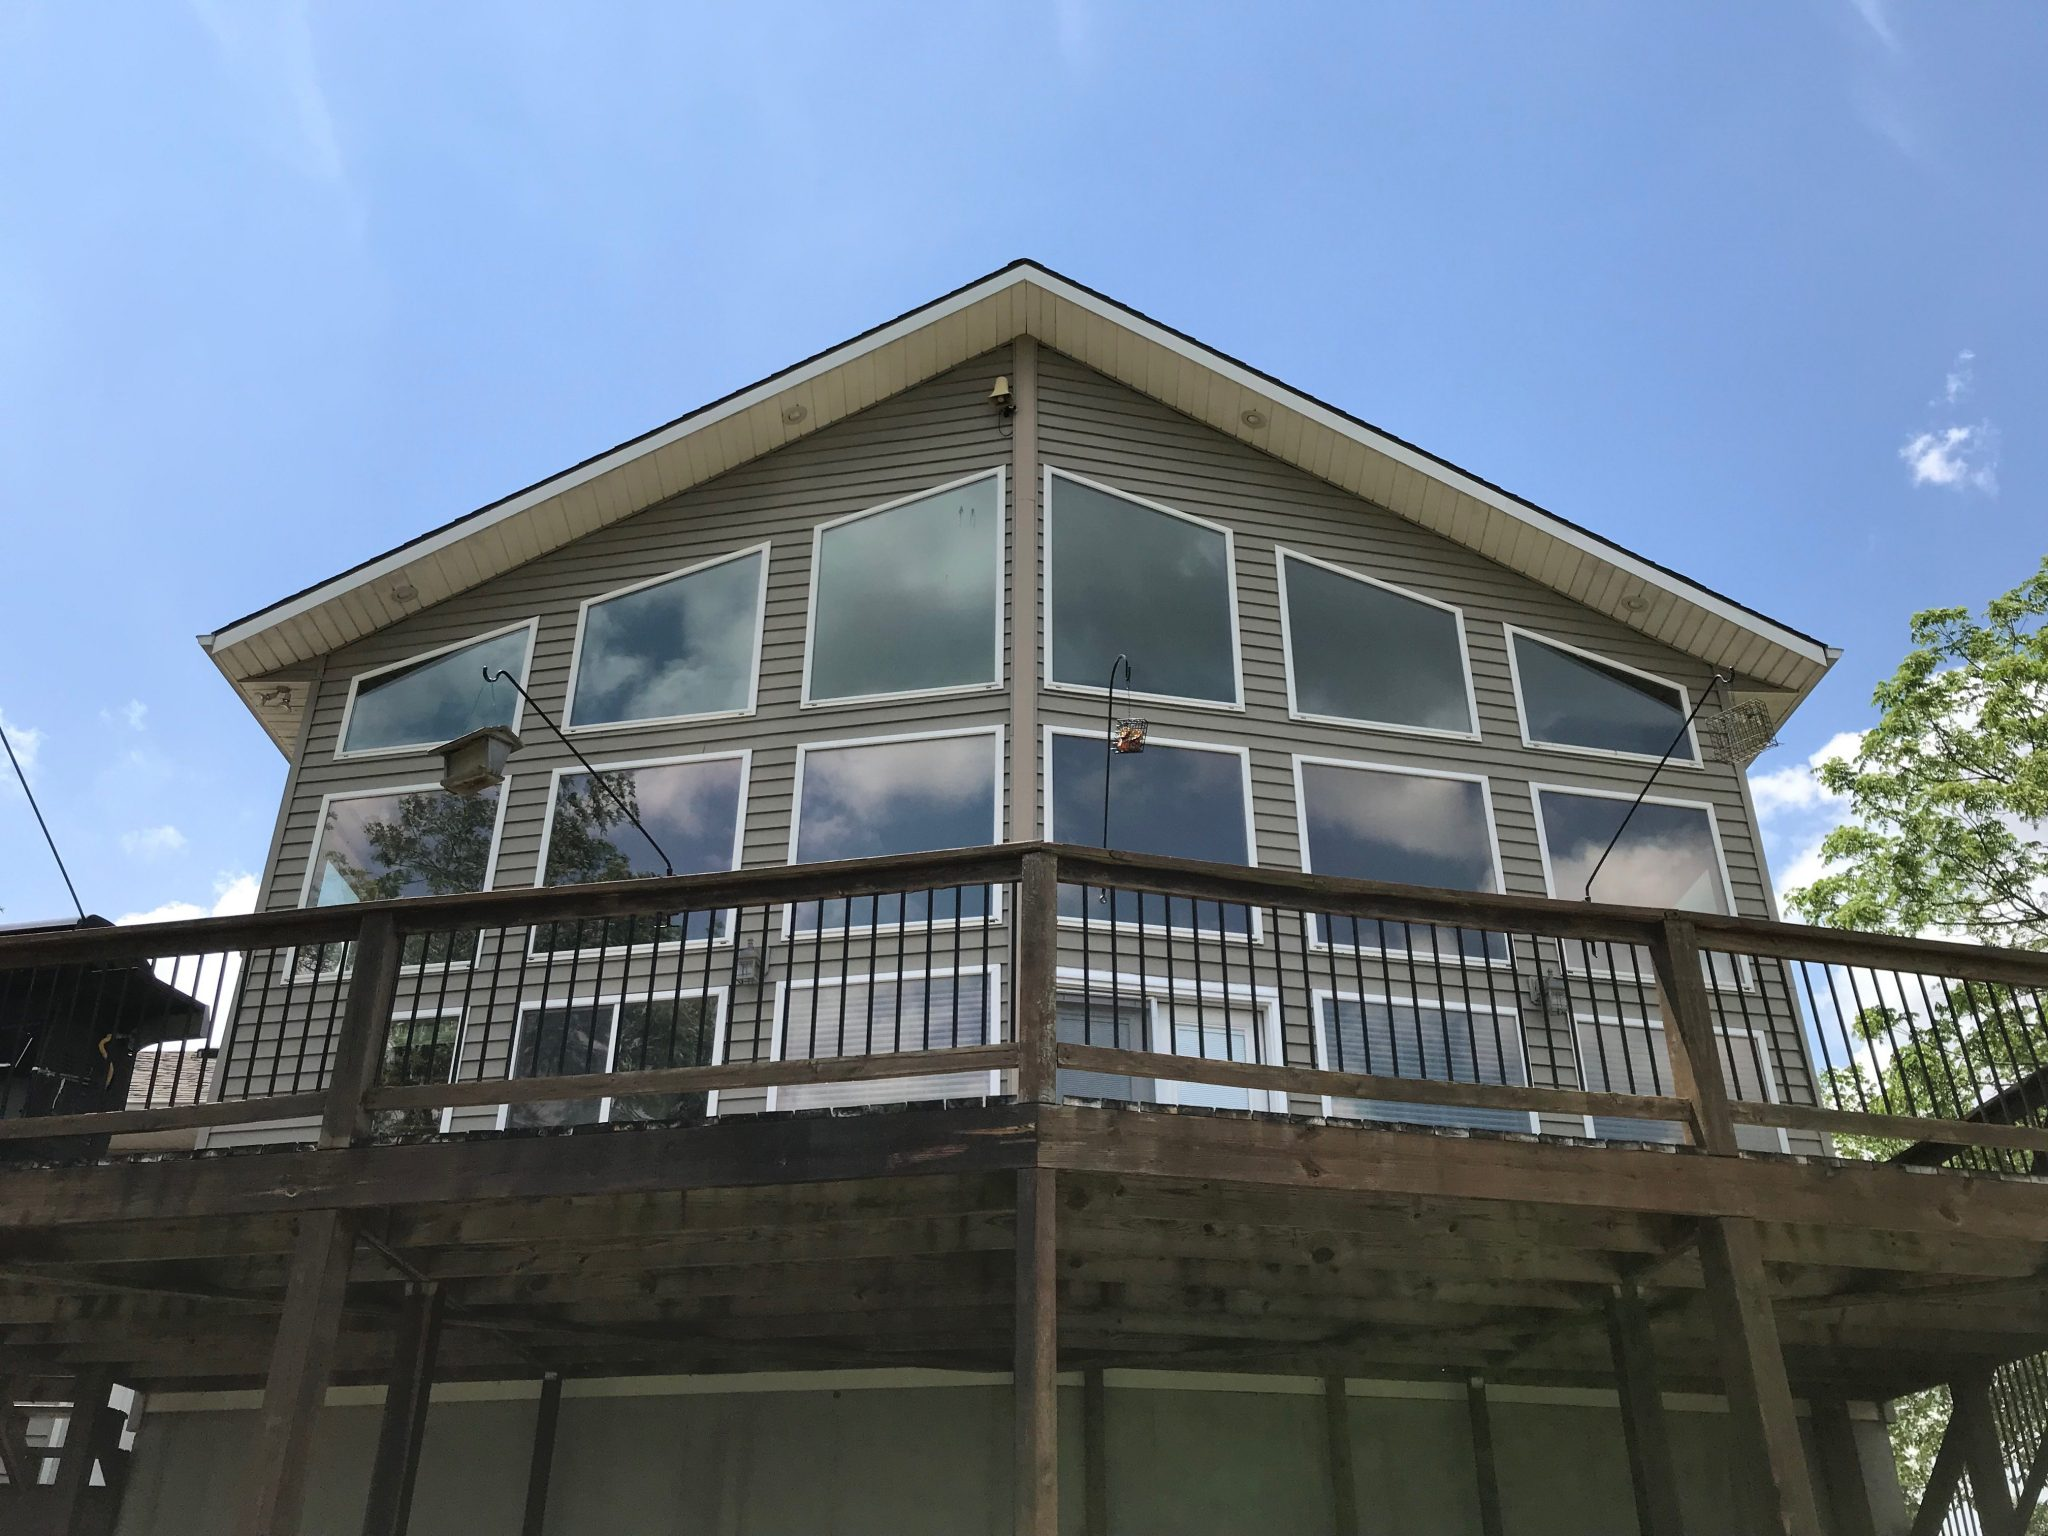 Beat the Heat With Home and Office Window Films in Kansas City 2 - Home and Commercial Window Films in Kansas City